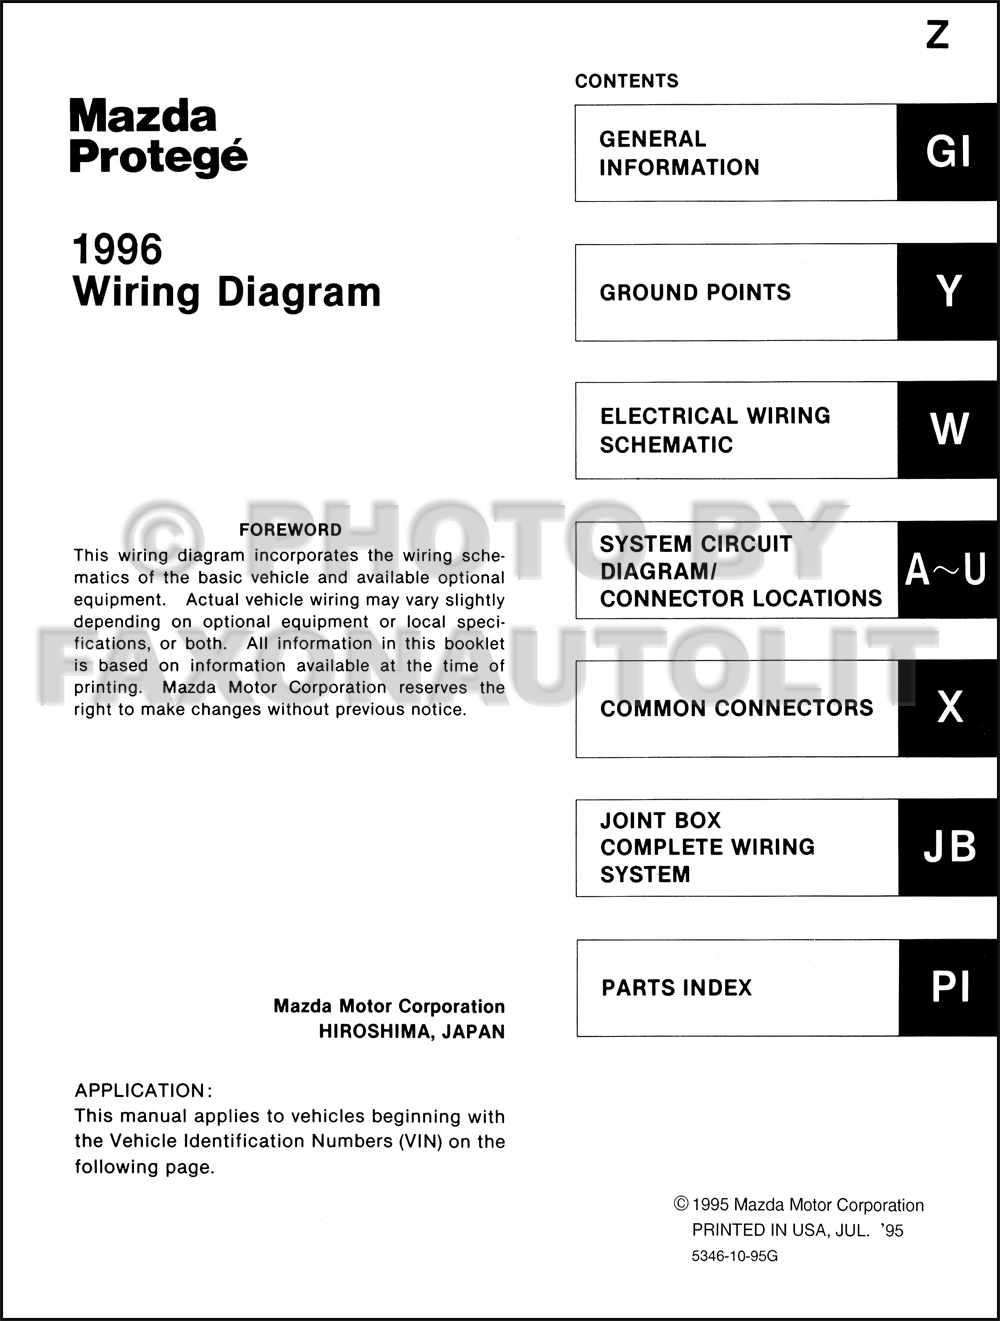 Mazda Protege 1996 Wiring Diagram Free For You B2600i 4x4 Starter Manual Original 2002 Harness Pcm